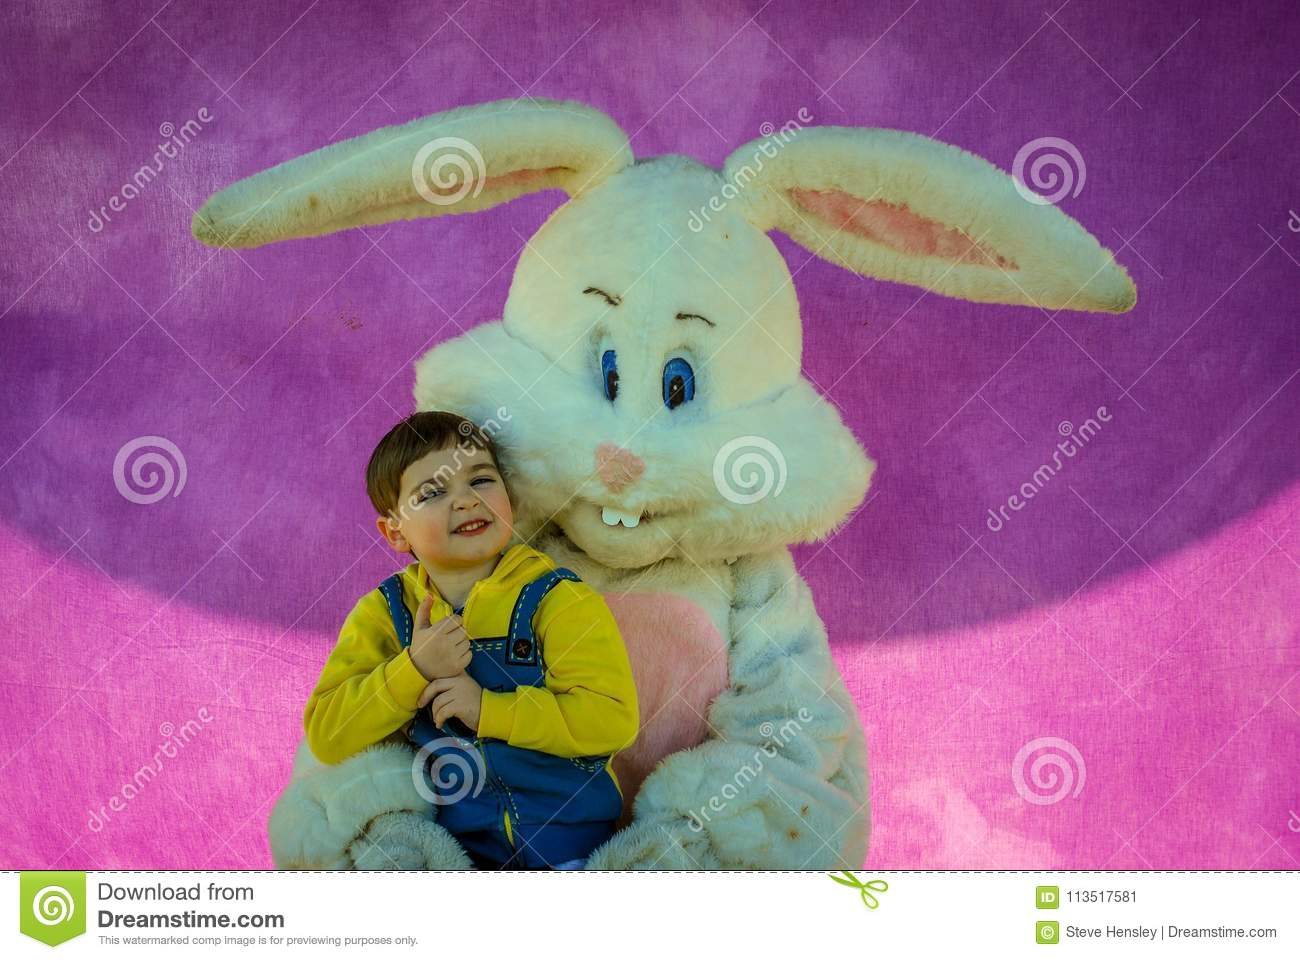 Richmond, KY US - March, 31 2018 - Easter Eggstravaganza - A boy poses with an Easter Bunny character for a photo,